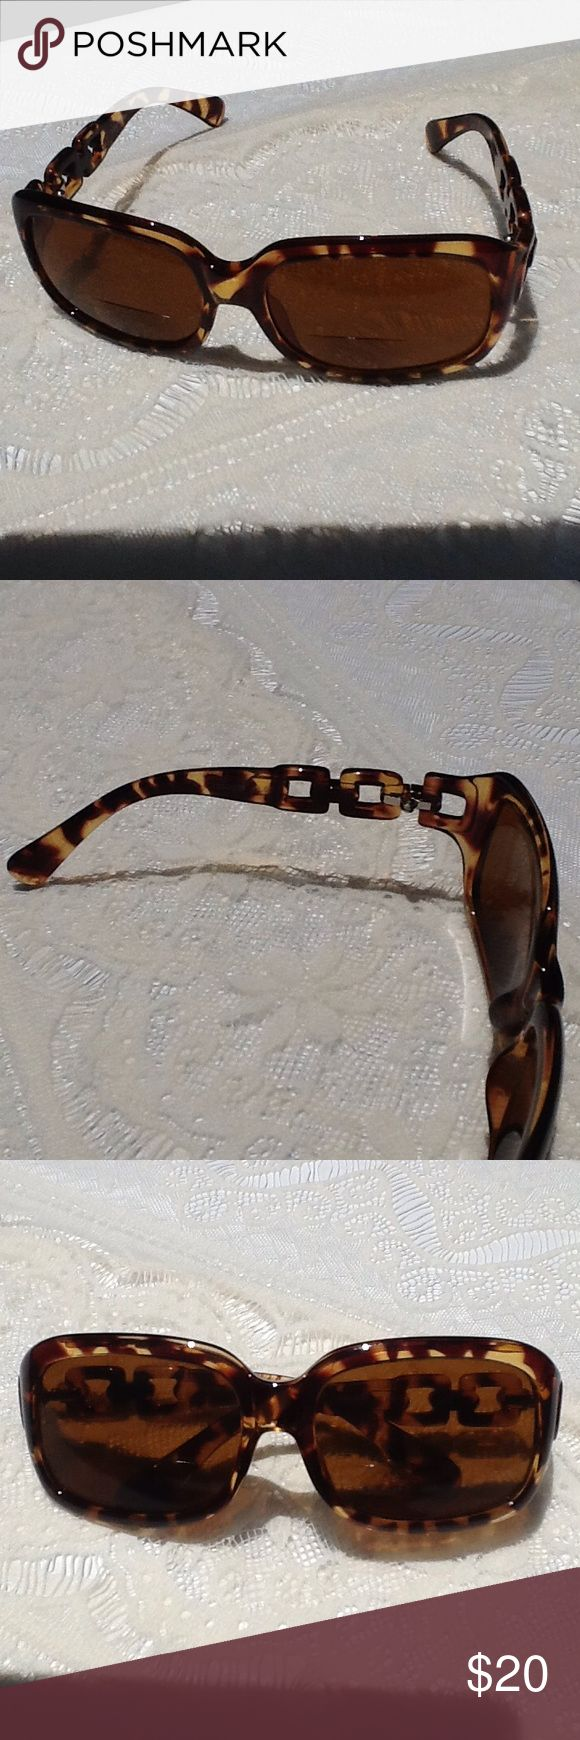 EYECUEYEWEAR  Bifocal Sunglasses 2.0 Bifocal 2.0 strength in very good condition.  Tortoise shell with attractive chain-like ear arms.  Great for reading outside! icueyewear Accessories Sunglasses